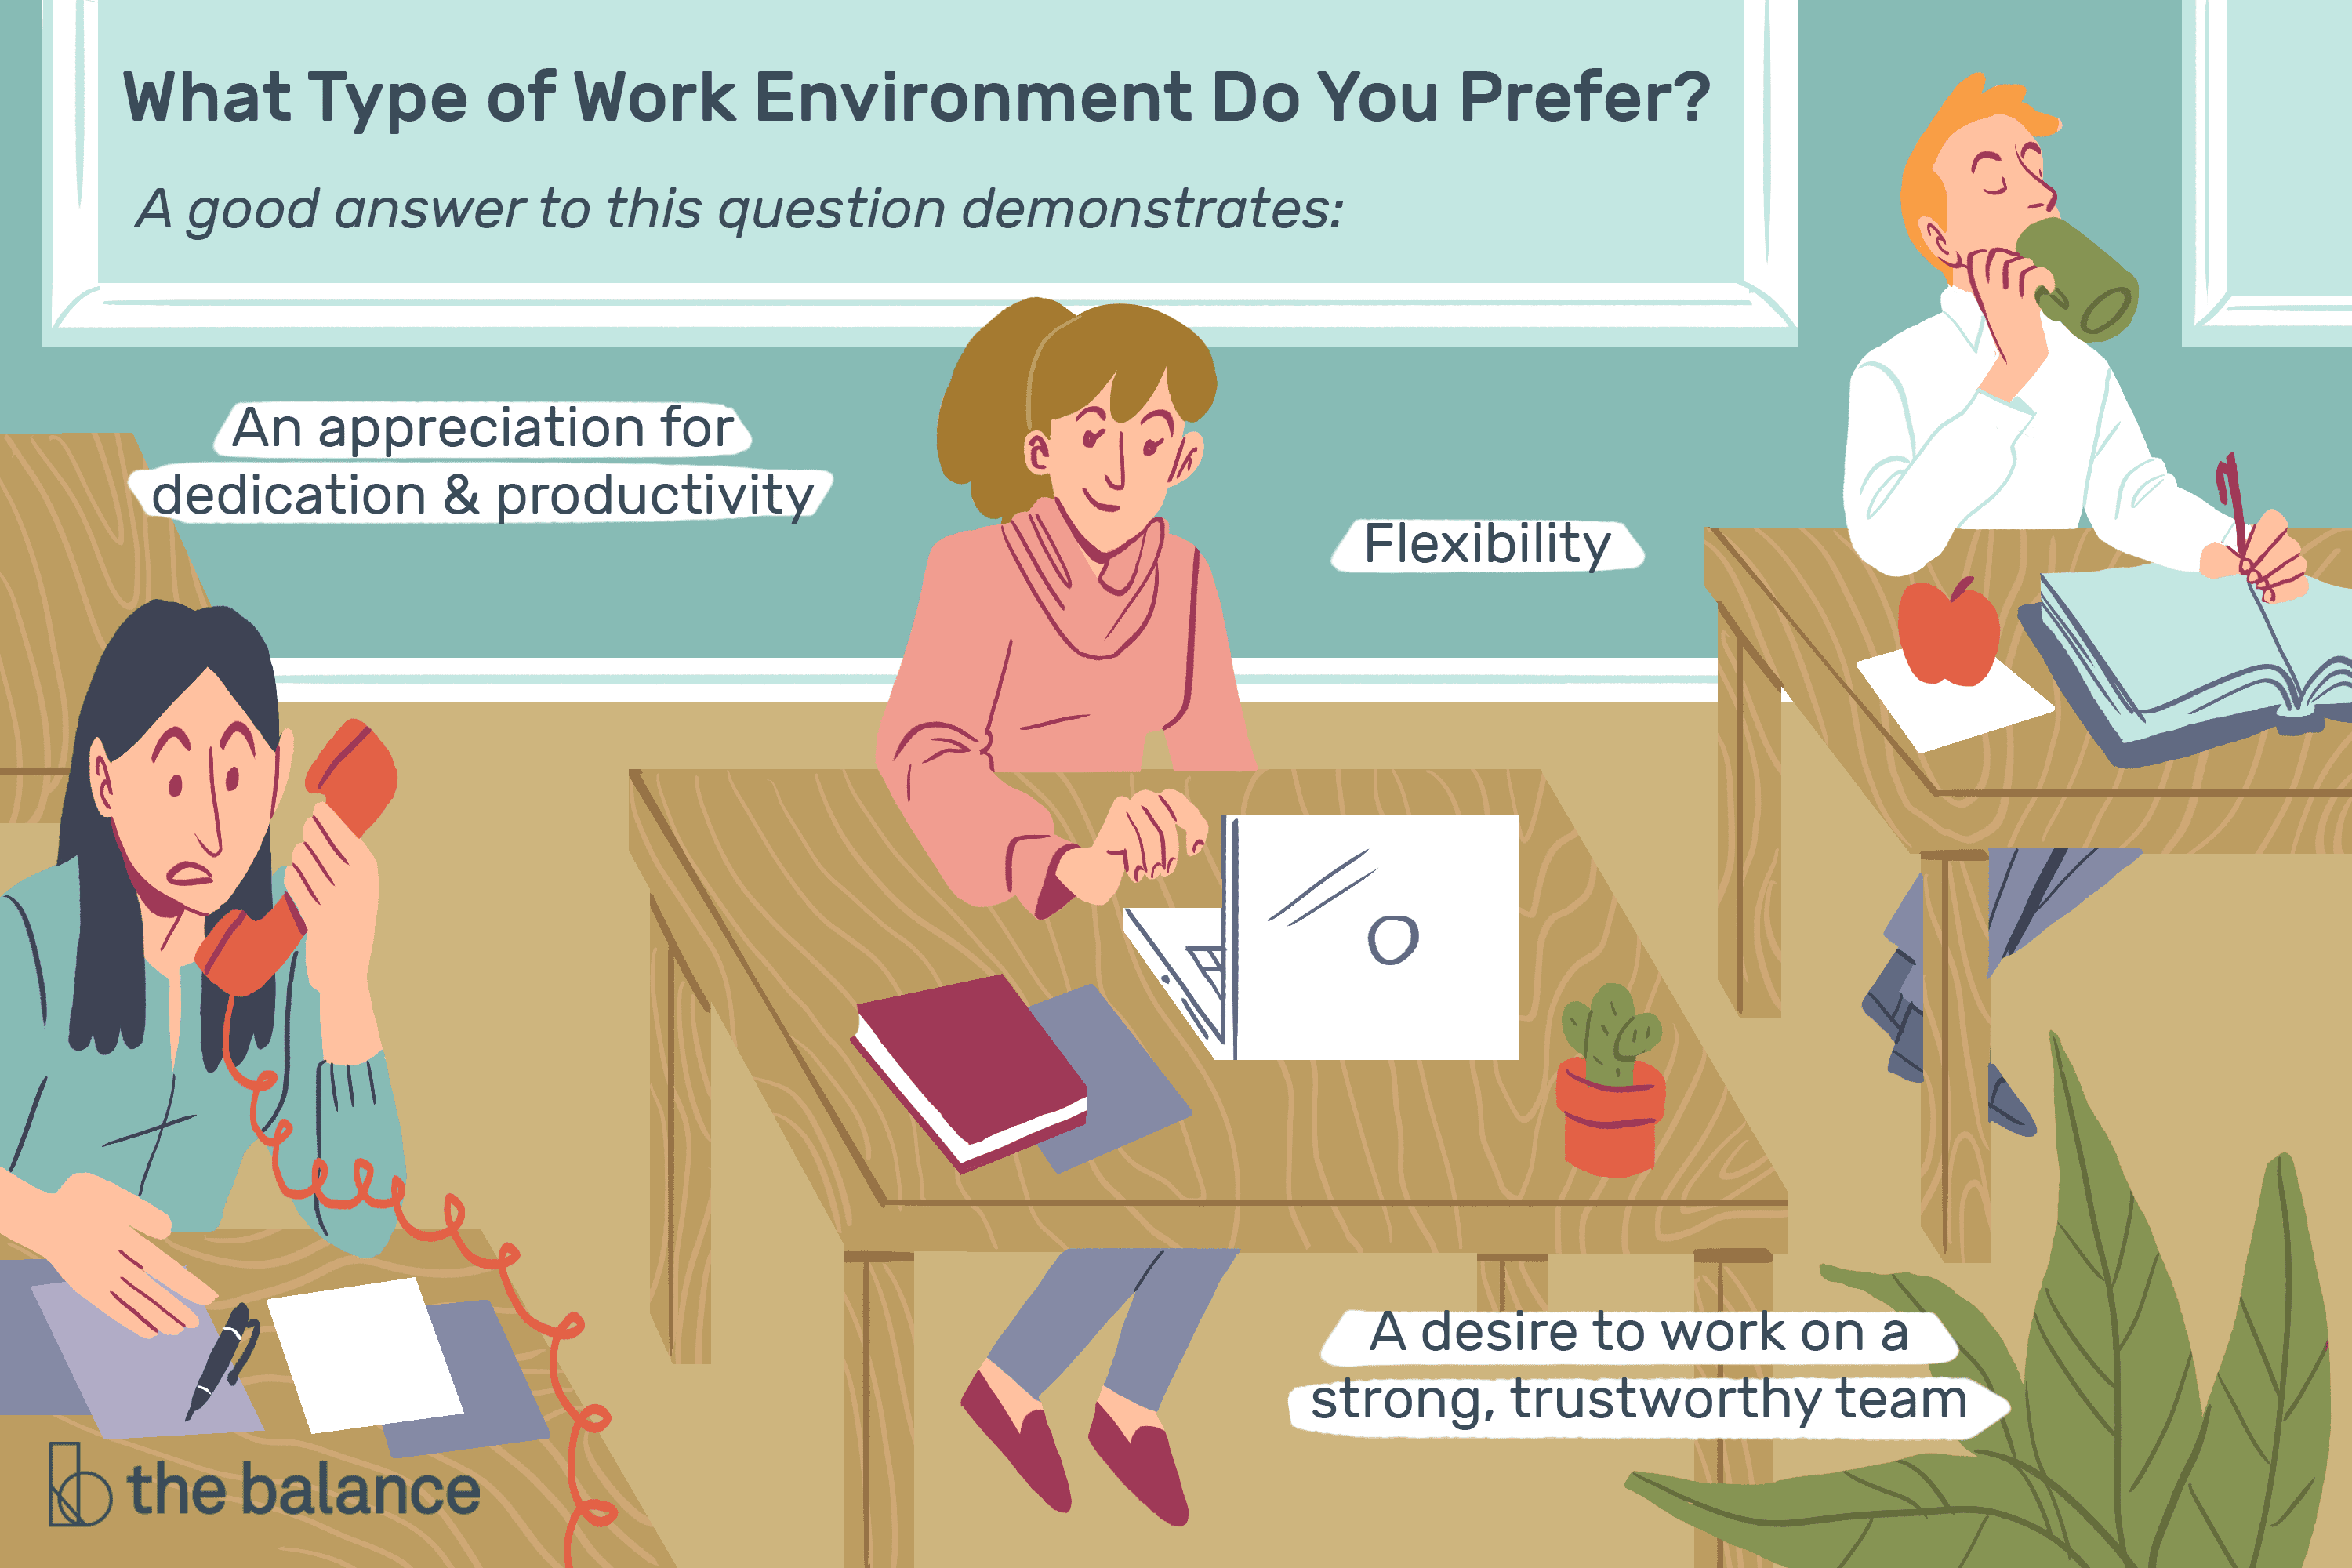 what type of work environment do you prefer sample answer